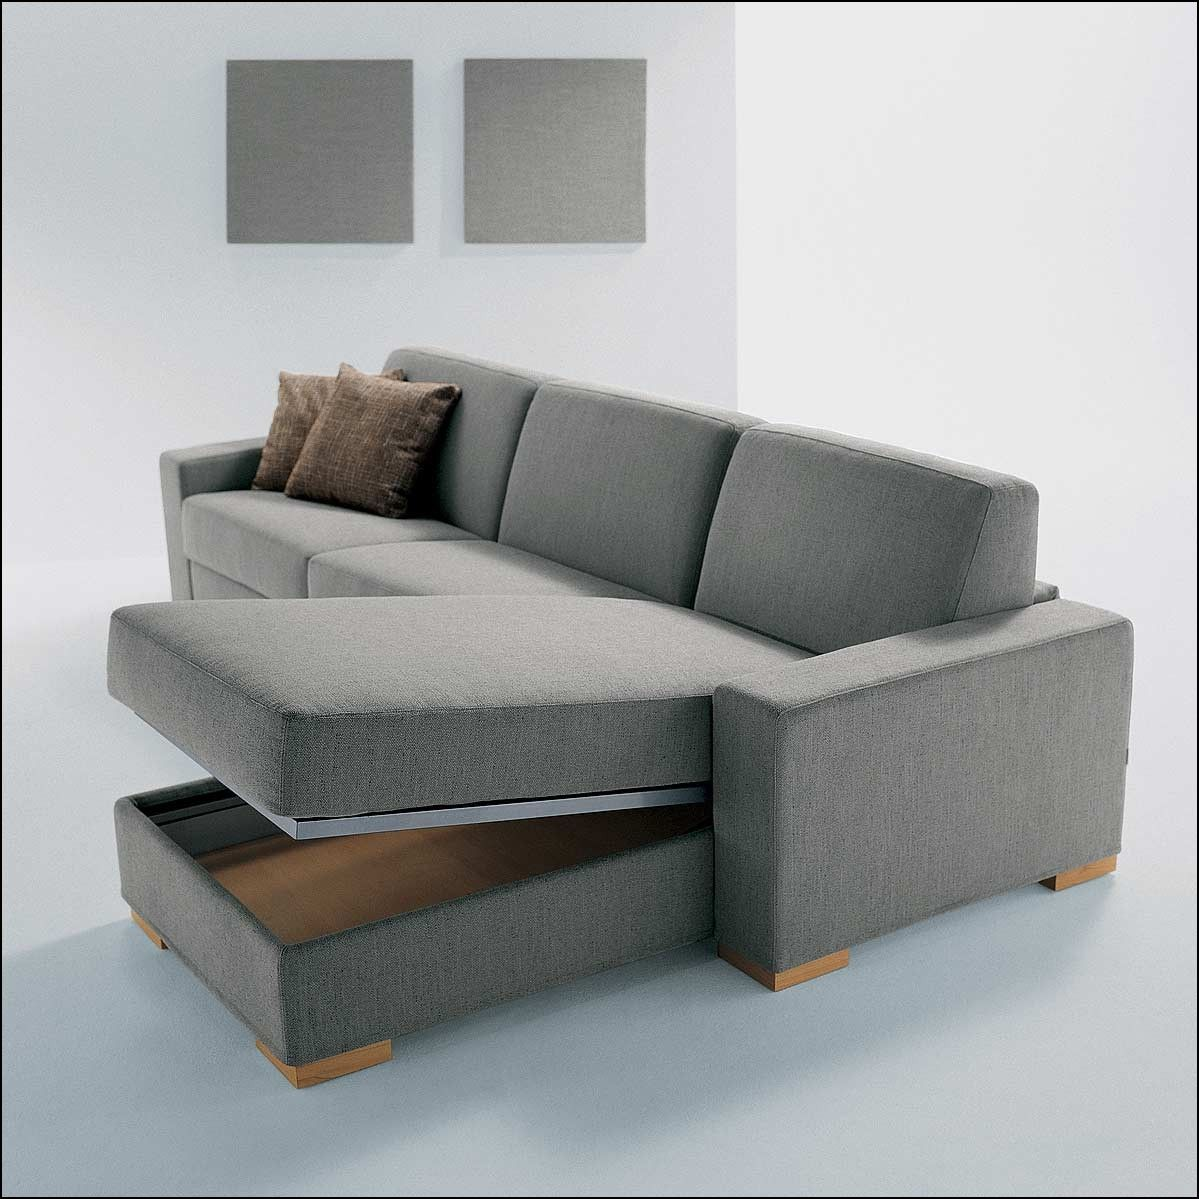 L Shaped Couch With Storage Sofa Bed